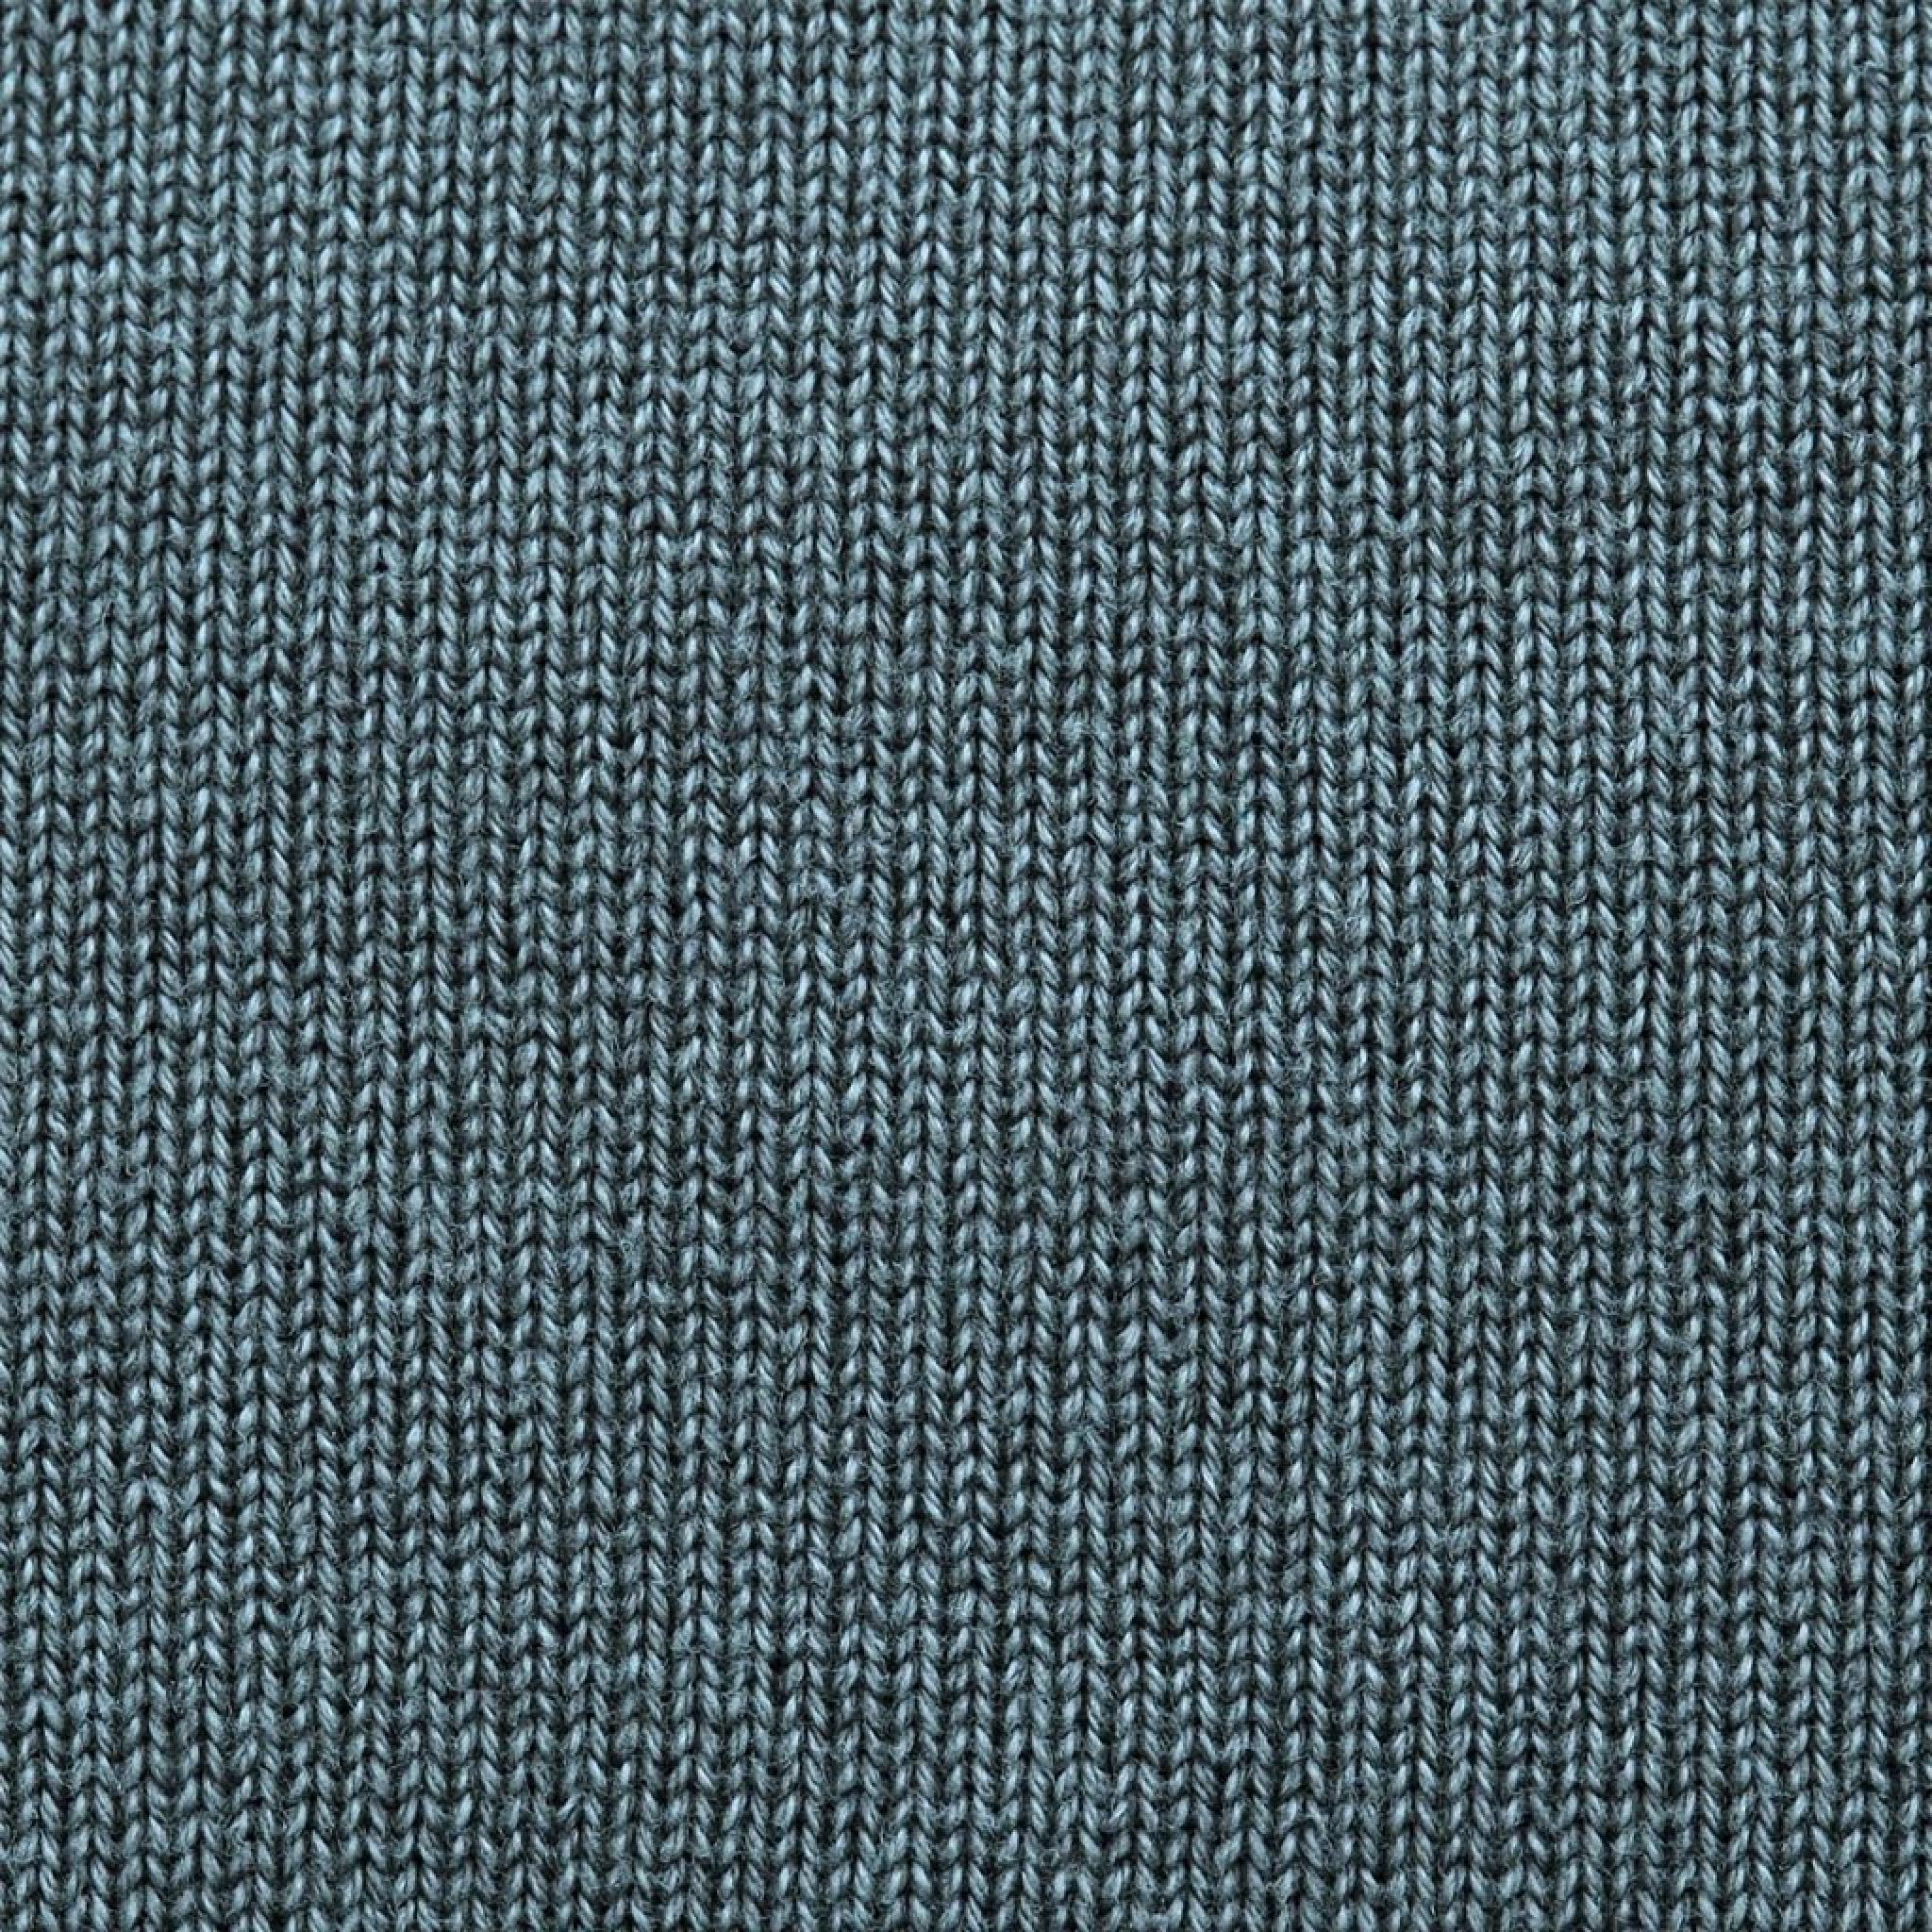 wool texture background image free thank you pictures clip art Cute Thank You Clip Art